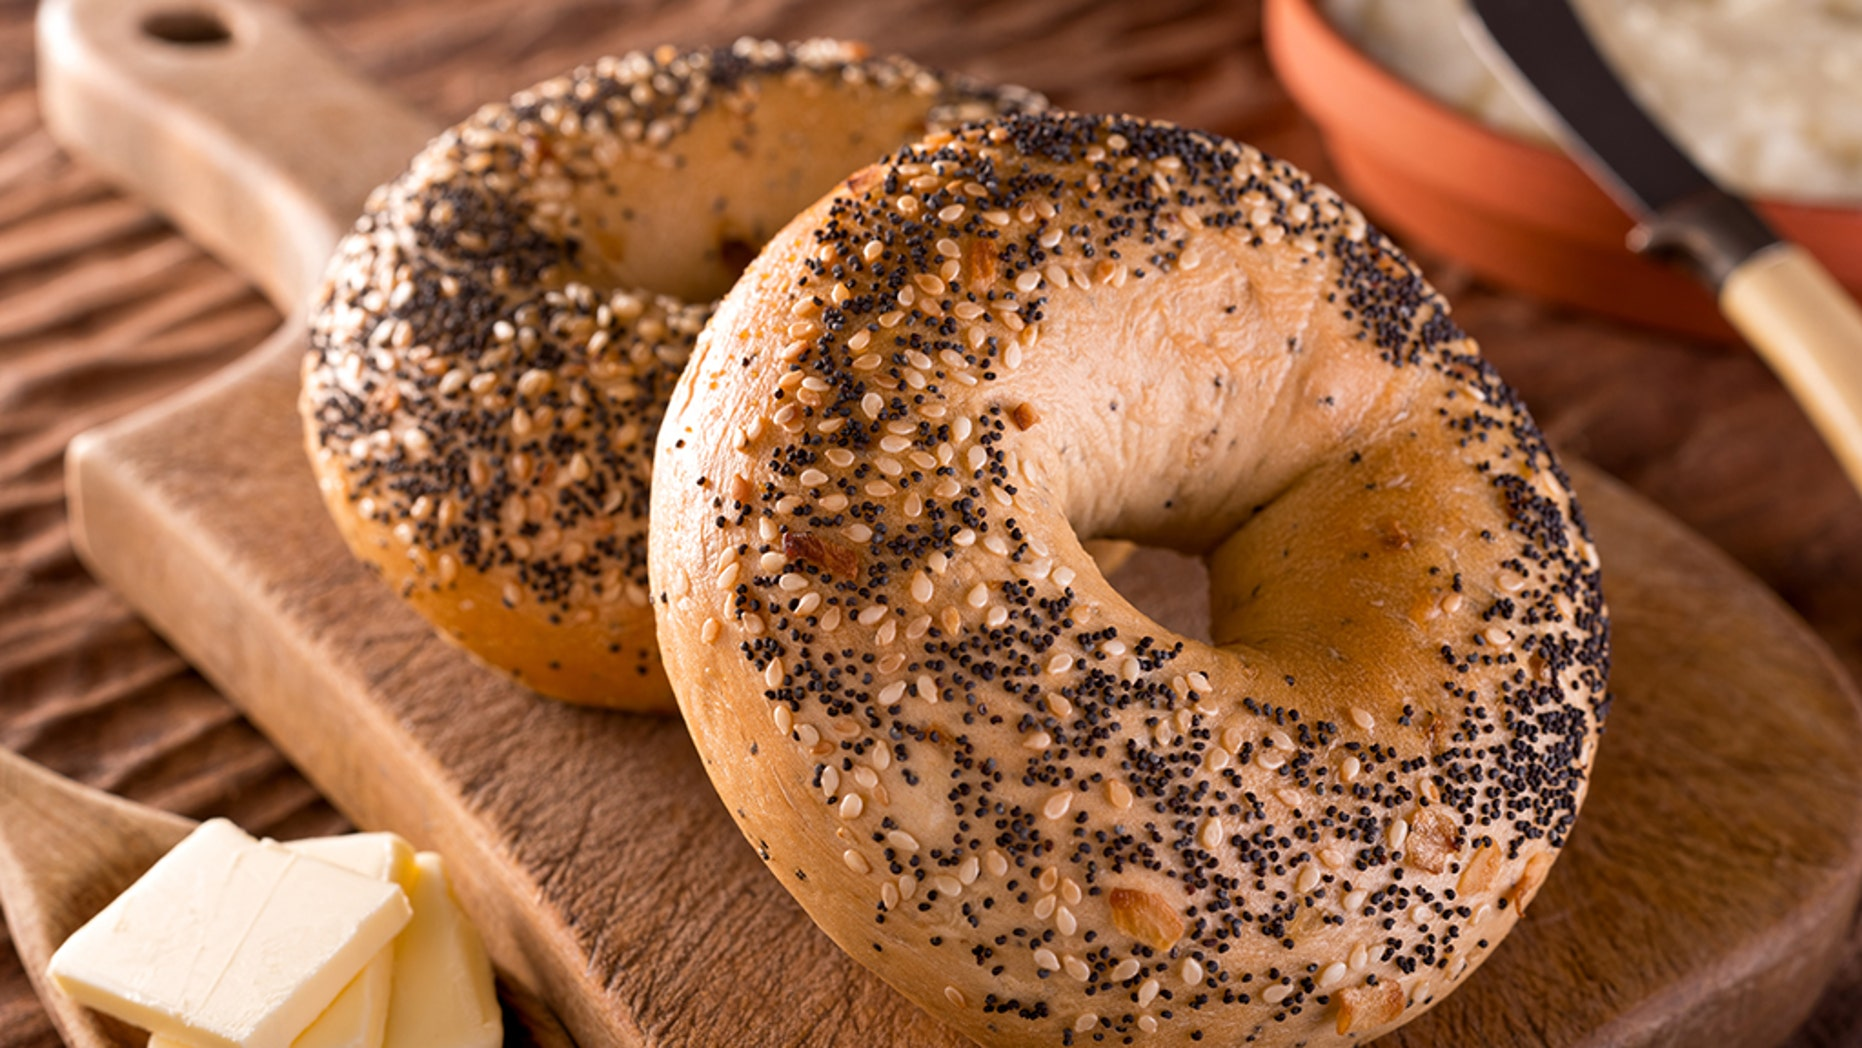 Freshly baked homemade bagels with onion, sesame seed, poppy seed, cream cheese, and butter.